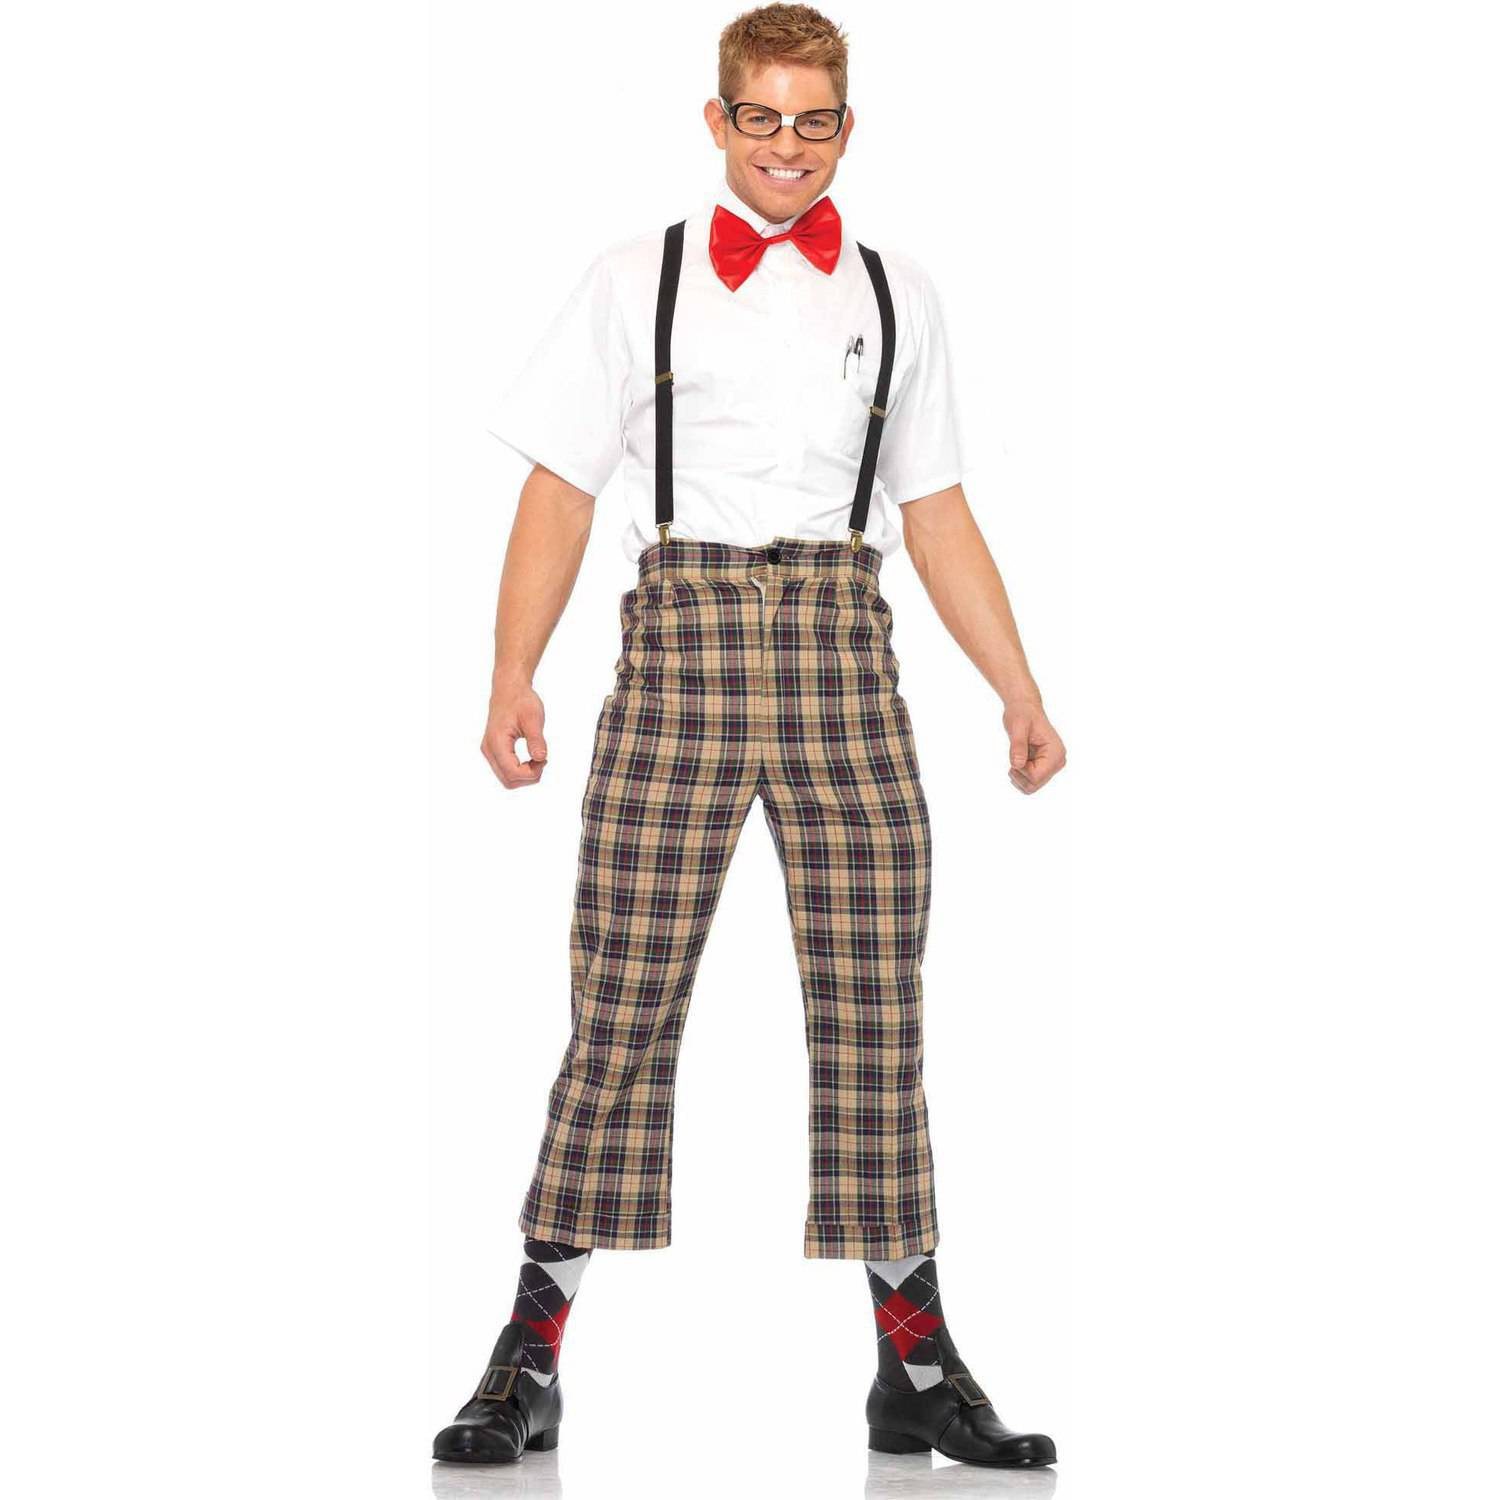 Leg Avenue 4-Piece Nerdy Ned Adult Halloween Costume